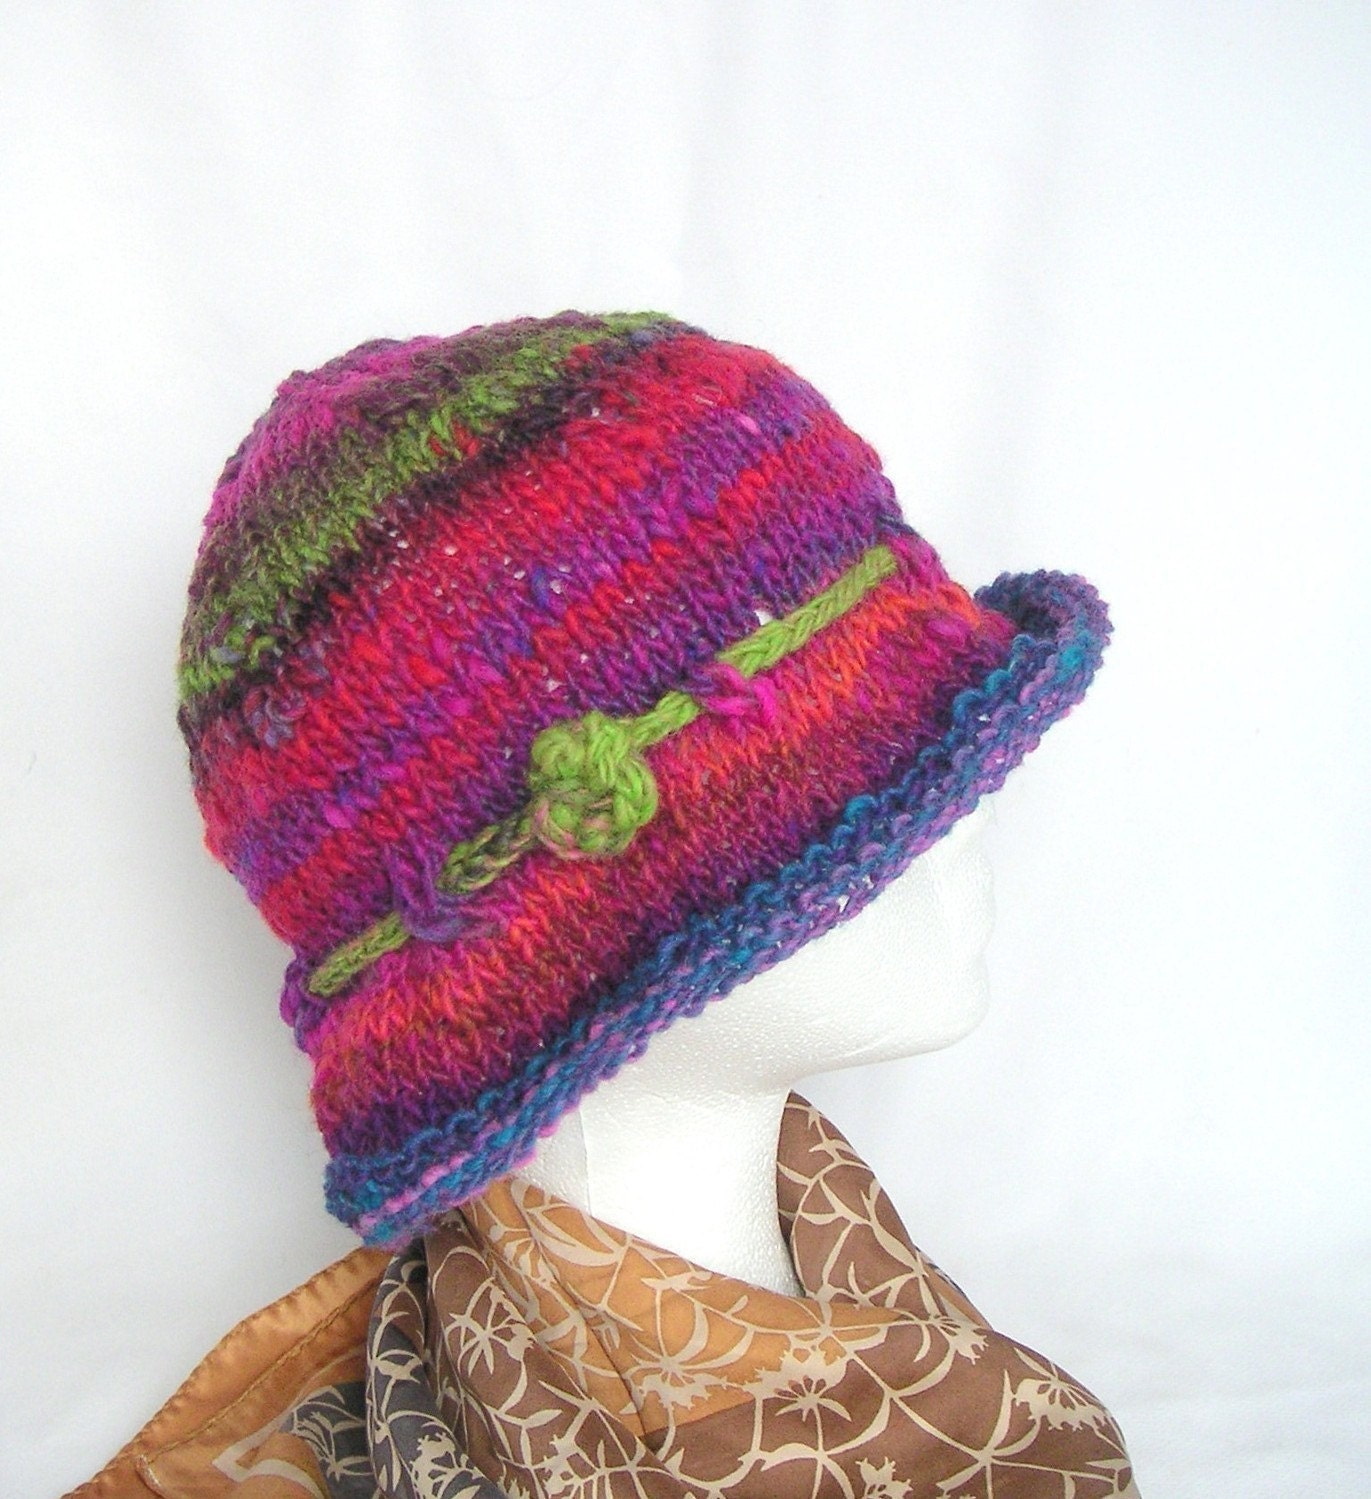 Knitting Hat Patterns Easy : EASY KNITTING PATTERNS FOR HATS   Free Patterns